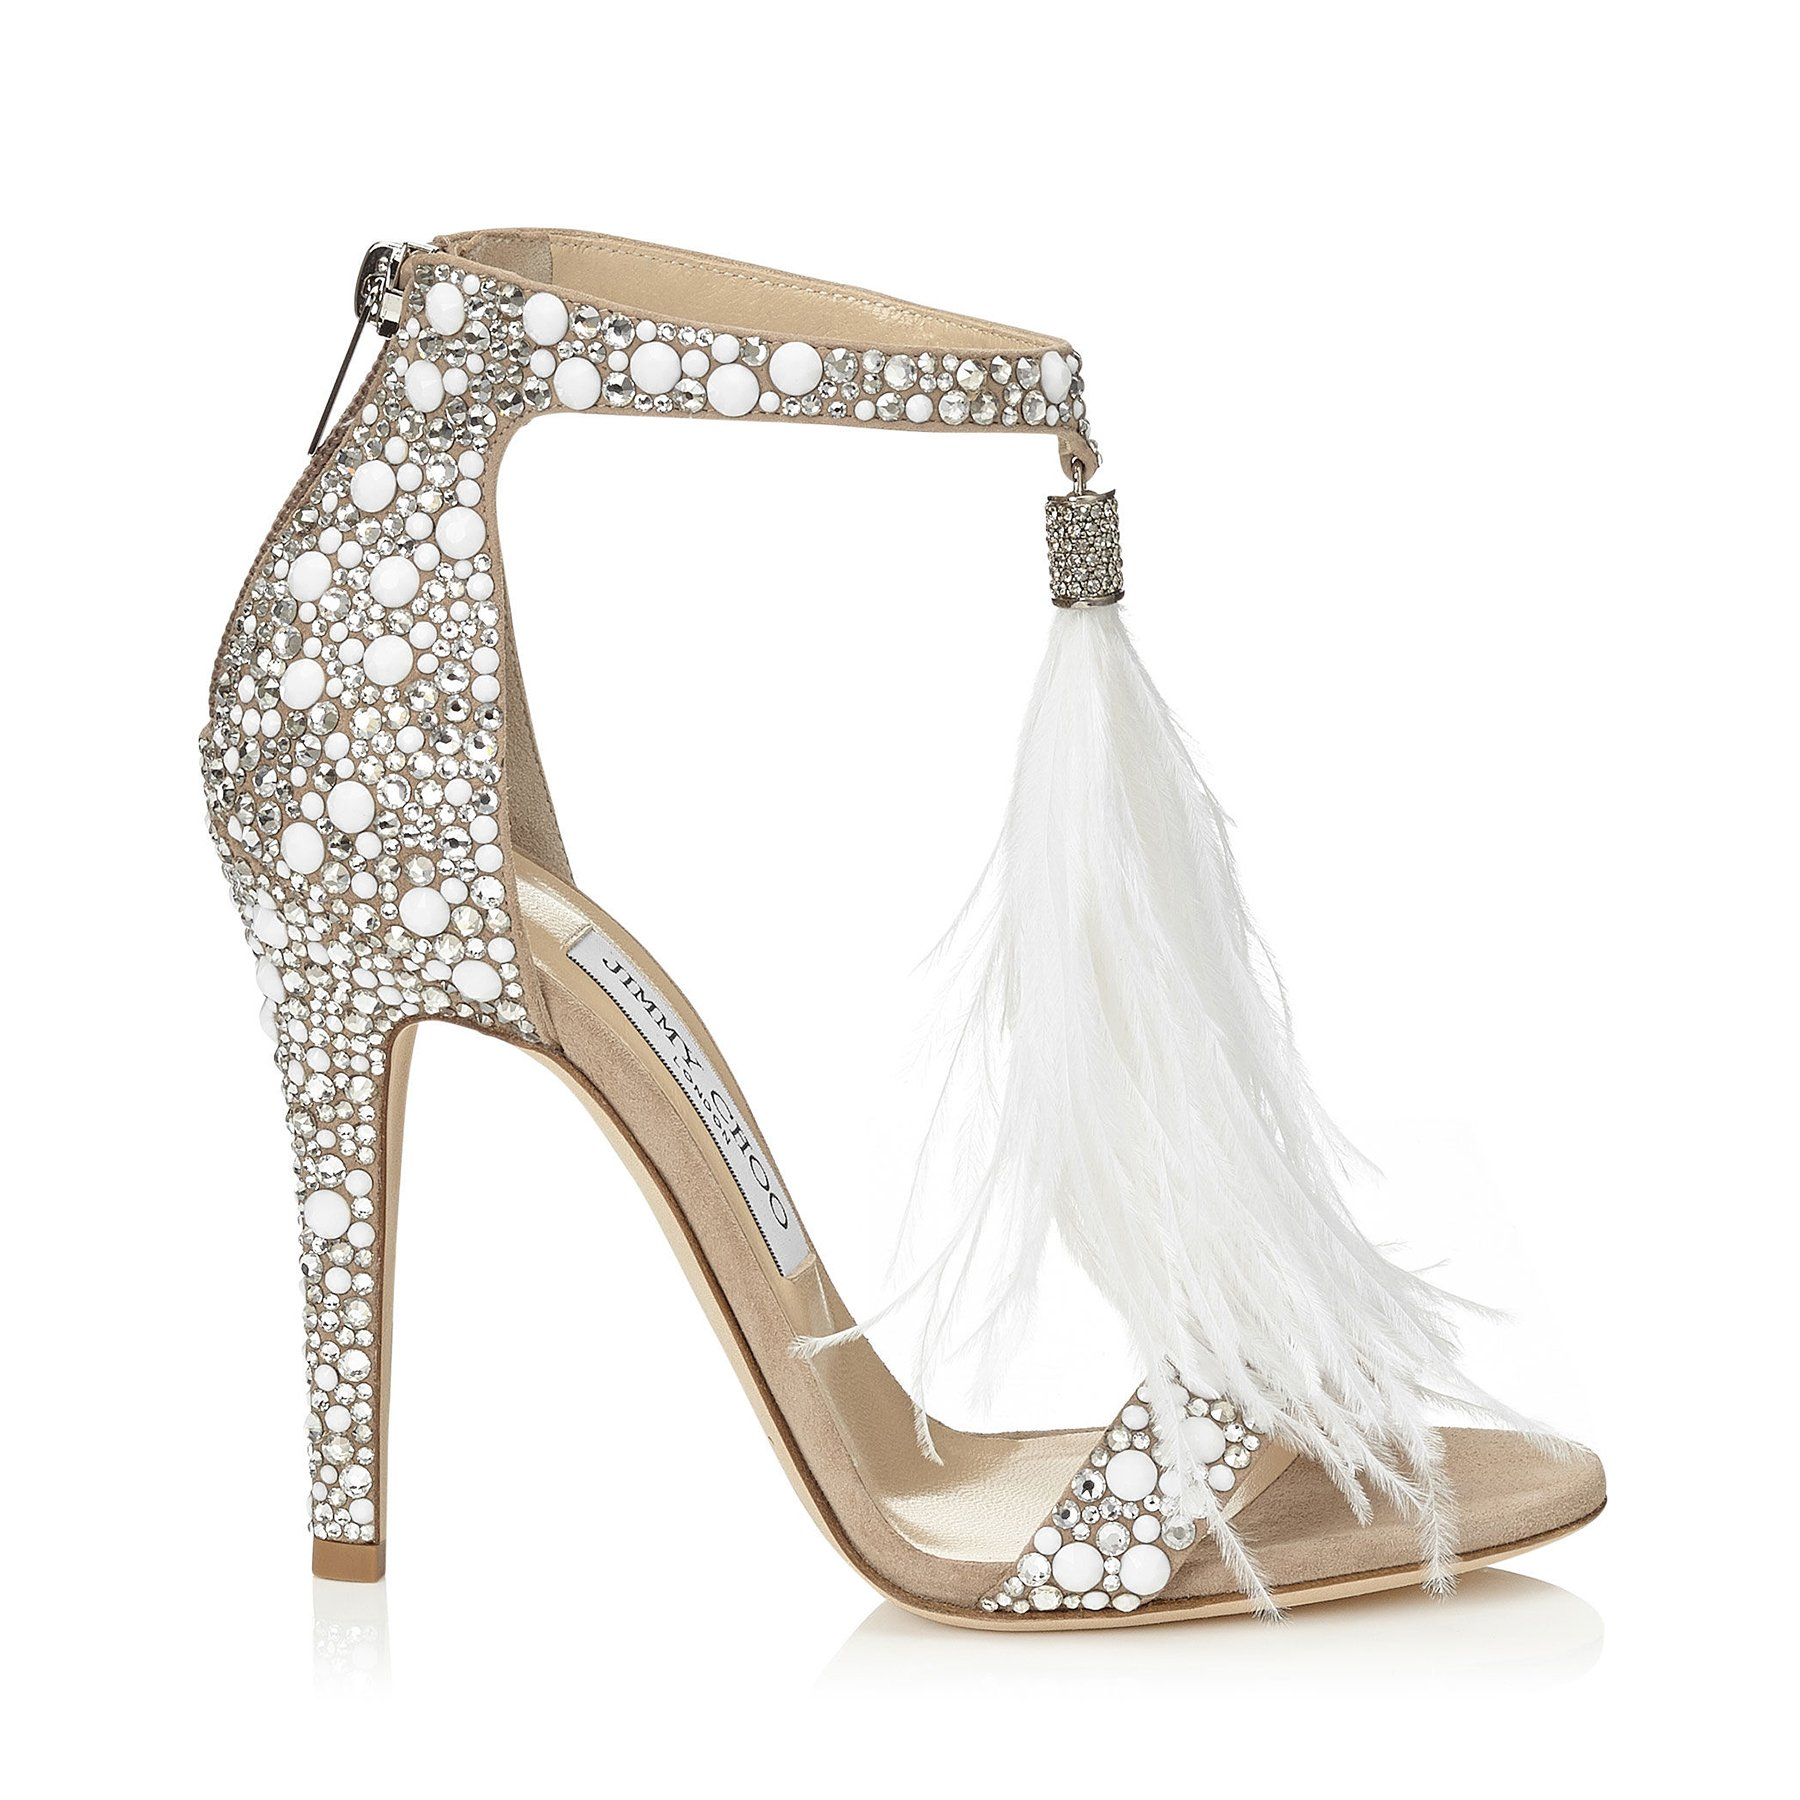 White Suede And Hot Fix Crystal Embellished Sandals With An Ostrich Feather Tel Viola 110 Cruise 16 Jimmy Choo